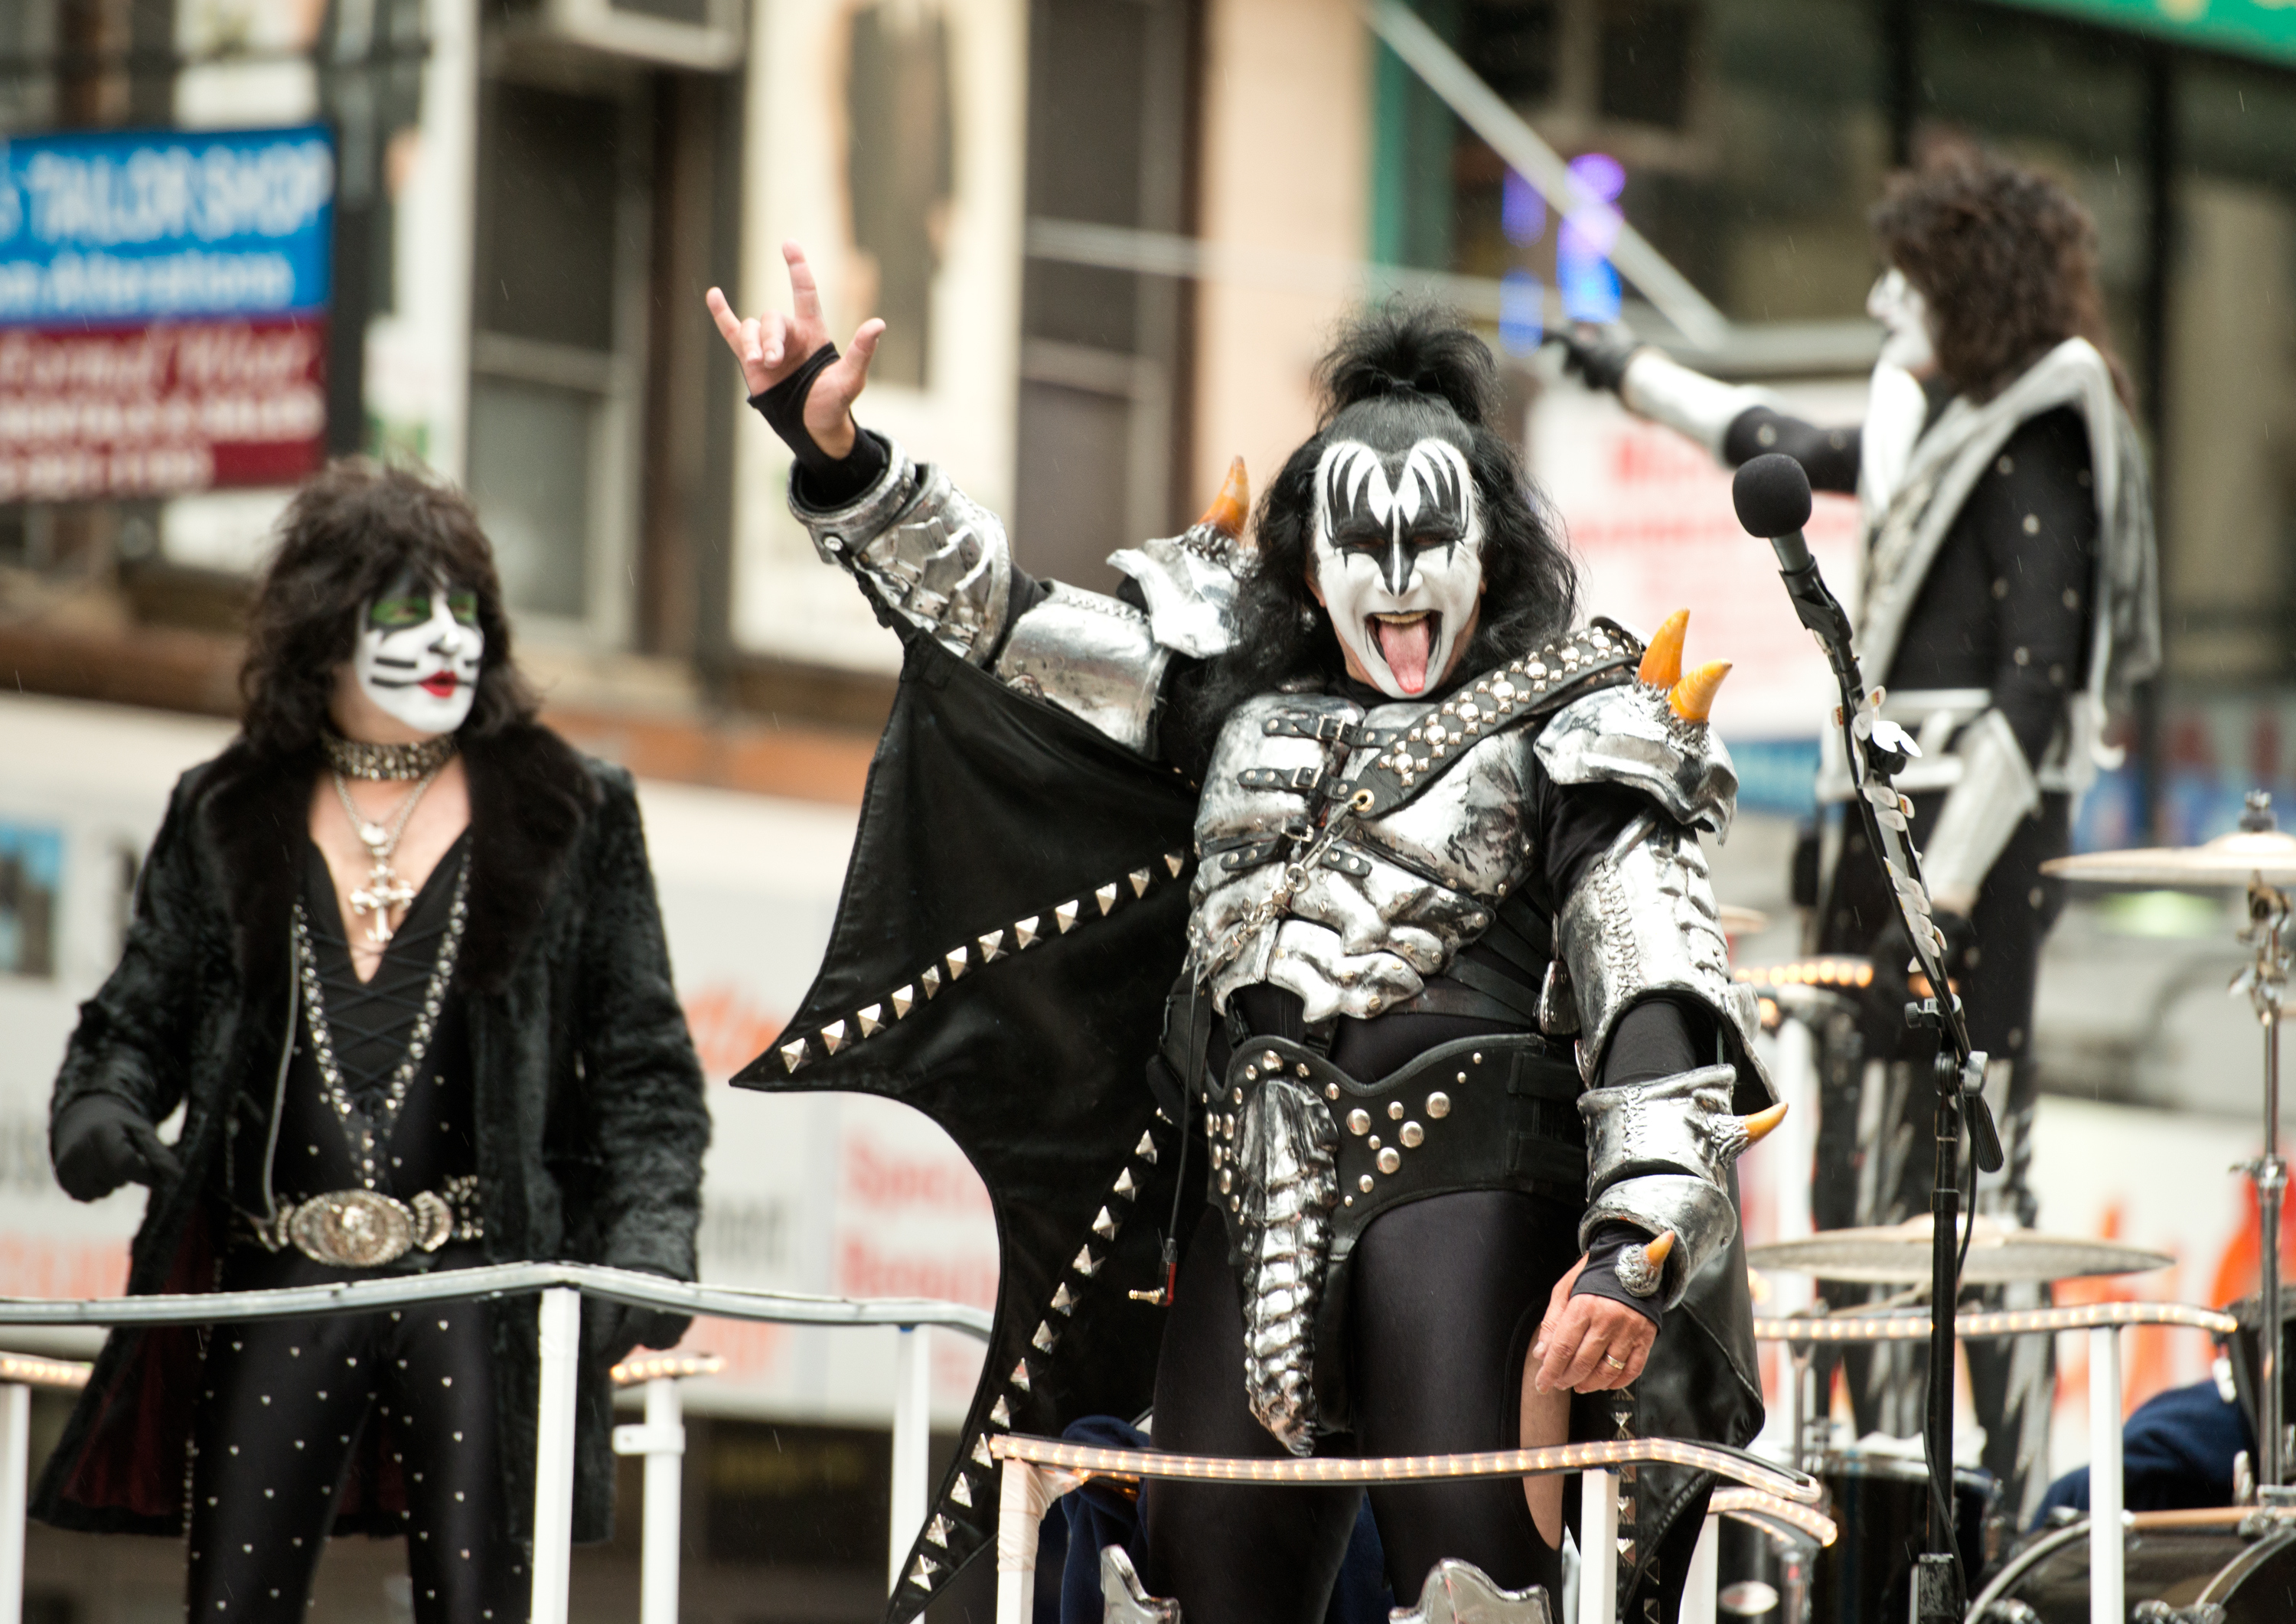 Paul Stanley Says Kiss 'Screwed Over' by Thanksgiving Day Parade